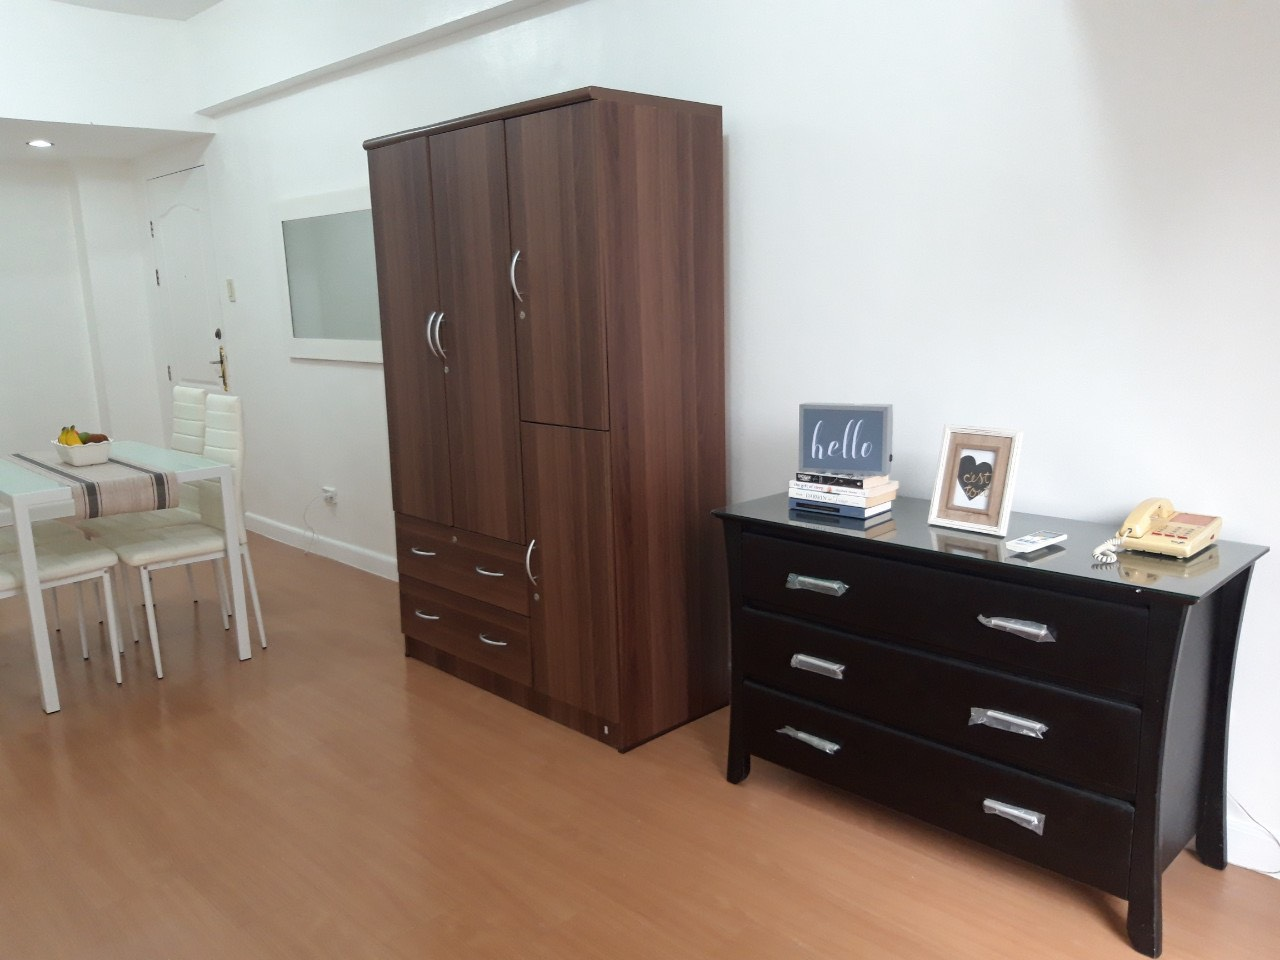 1 Bedroom Condo For Sale, Forbeswood Heights, BGC 2